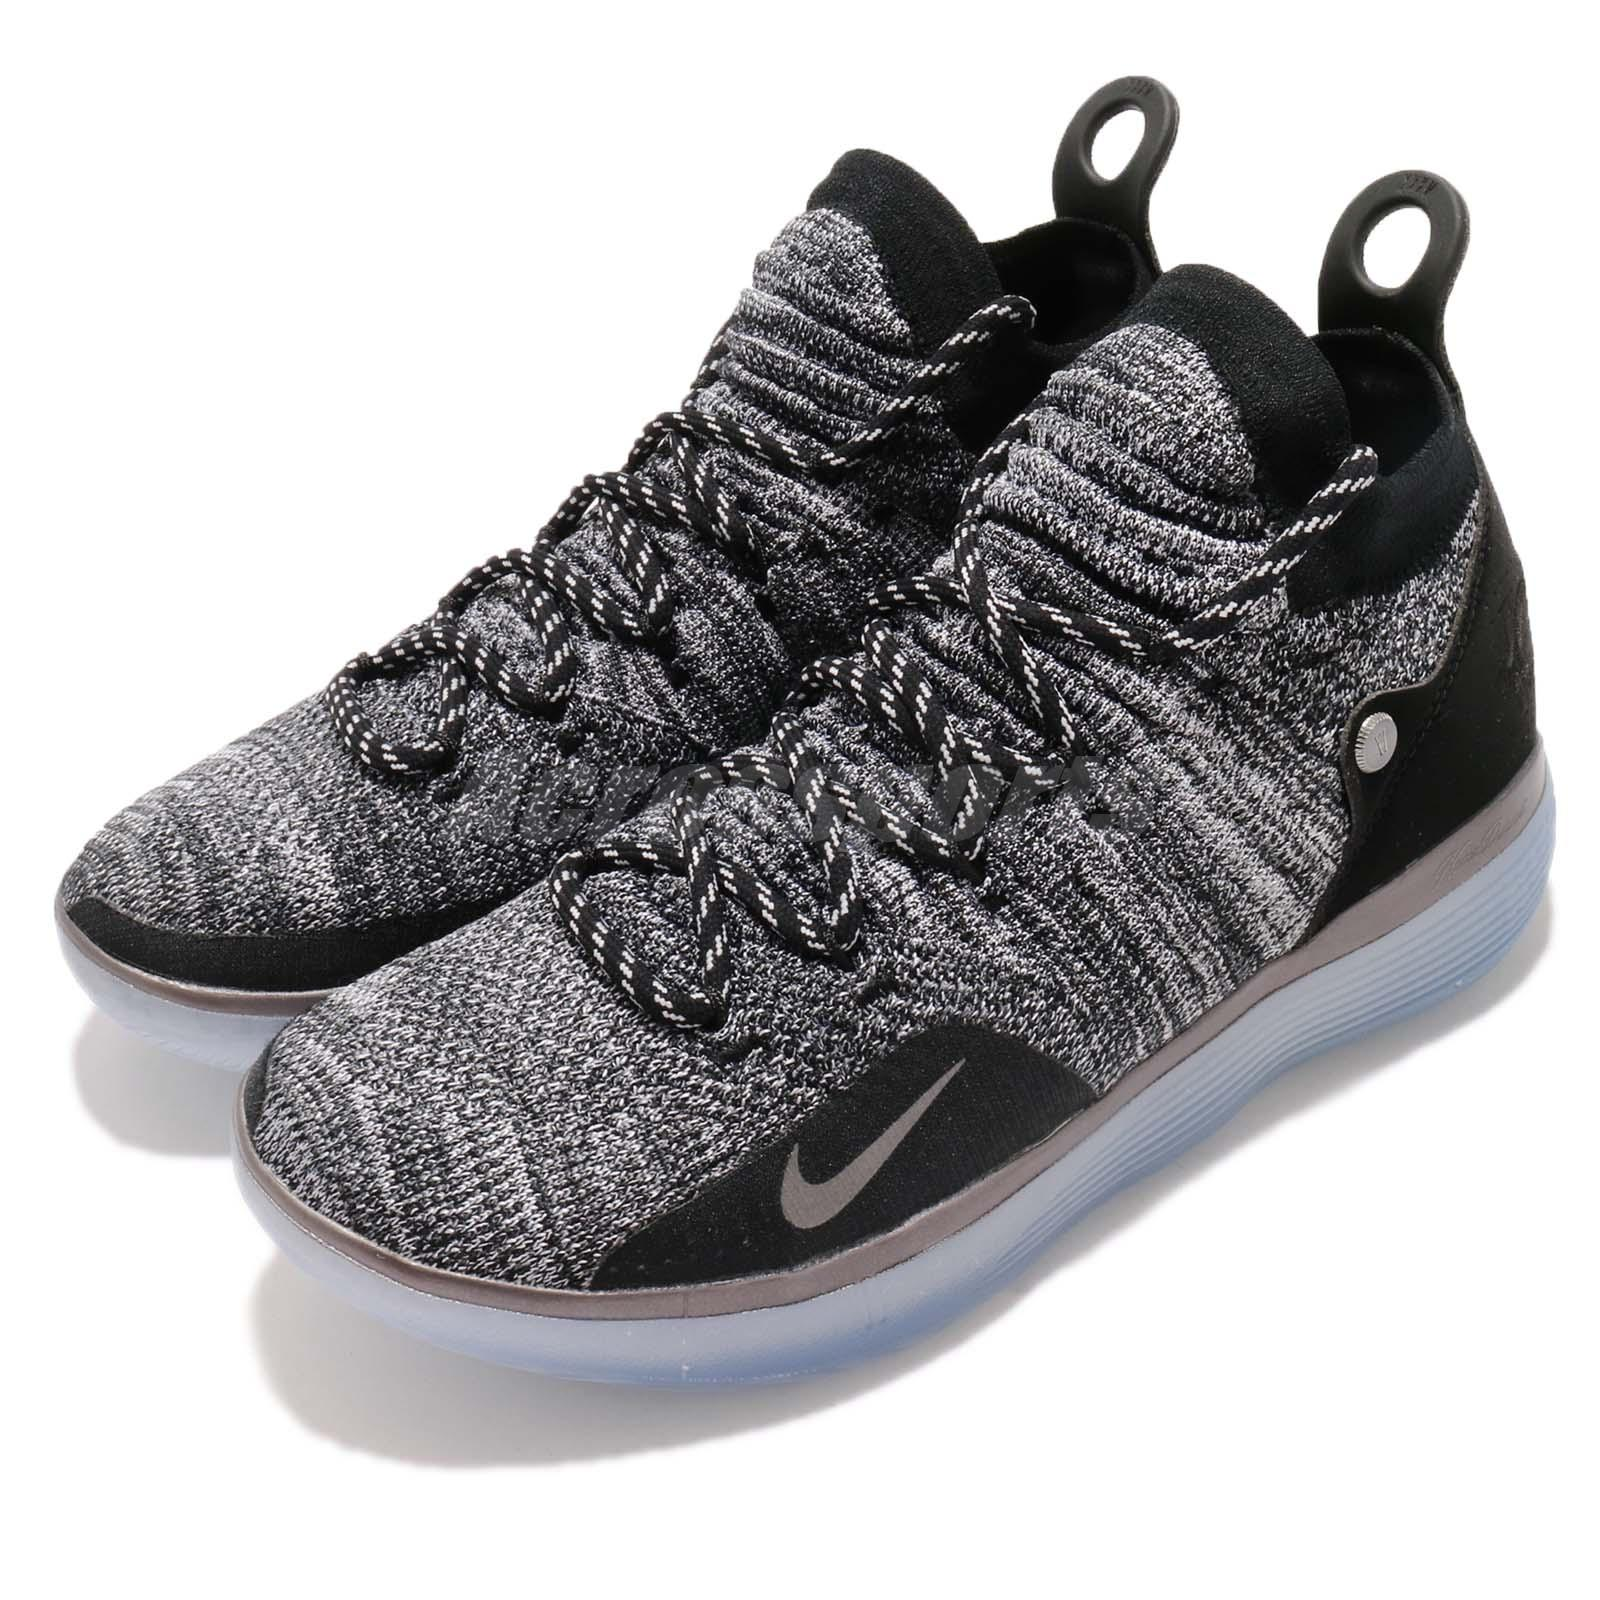 fb13ade25c15 Details about Nike Zoom KD 11 EP Still KD Black Grey Kevin Durant  Basketball Shoes AO2605-004